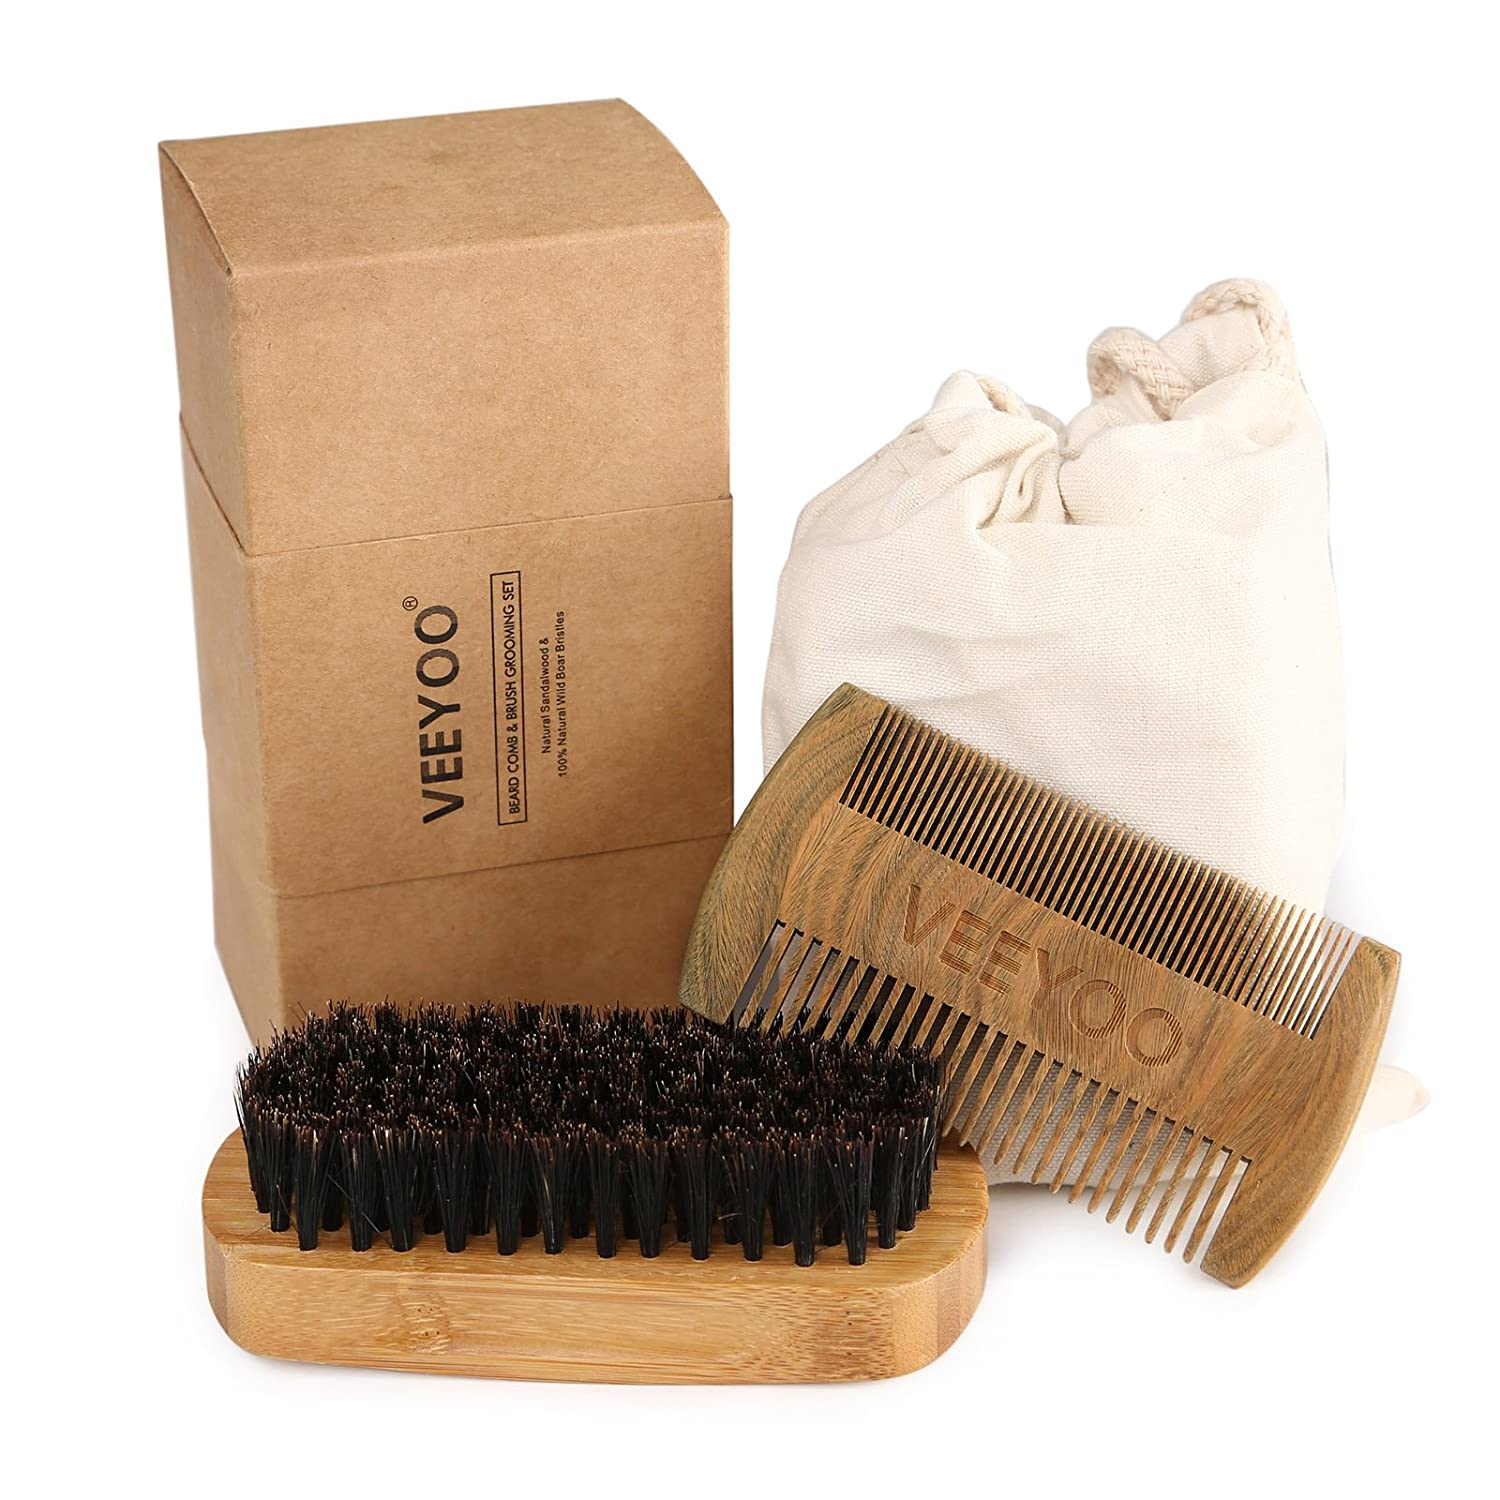 VEEYOO Beard Brush and Comb Set for Men - Handmade Wooden Comb & Natural Boar Bristle Beard Brush Kit for Beards & Mustache Conditioning, Styling & Maintenance - Protective Sleeve & Gift Pouch